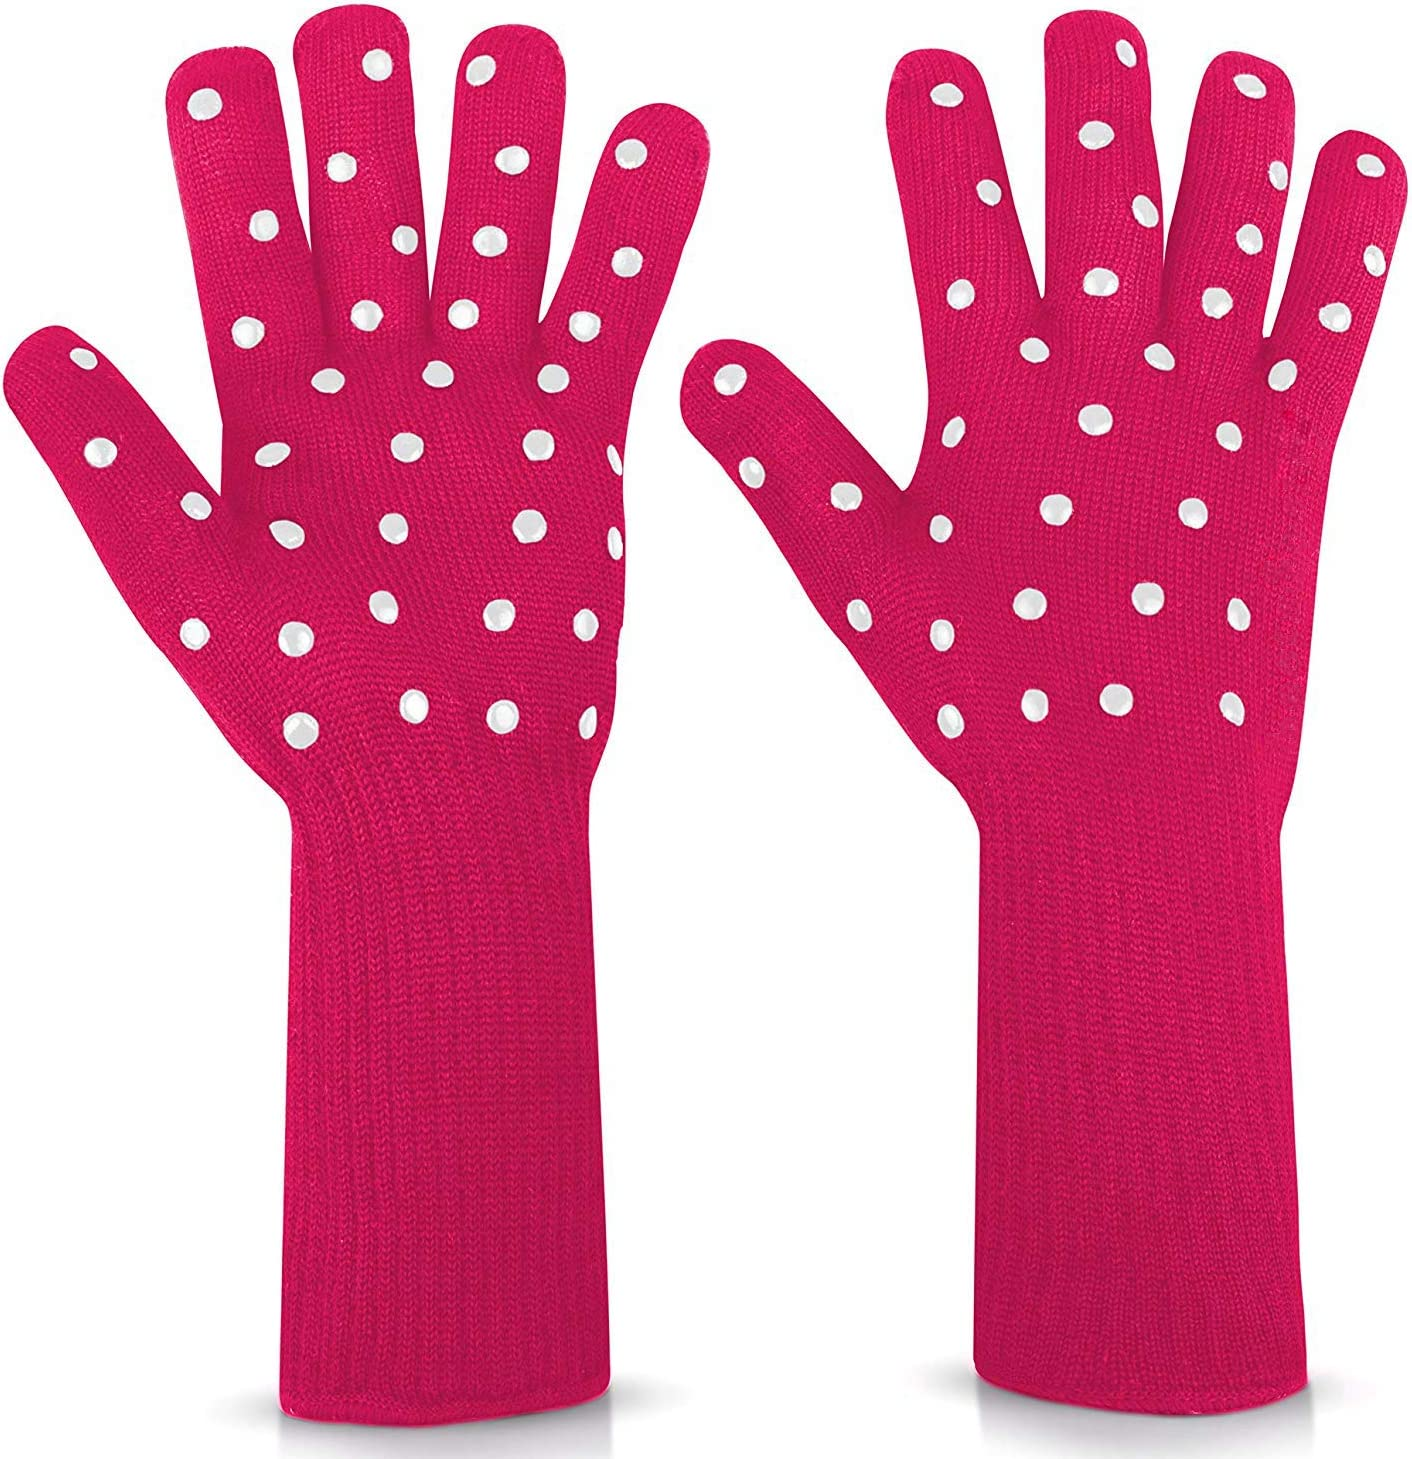 N/X Women BBQ Grilling Gloves Oven Gloves 2 Pack Heat Resistant Long Sleeve Oven Mitts Fireplace Baking Gloves Cut Resistant Cooking Gloves with Silicone Non-Slip (Fuchsia Dot)